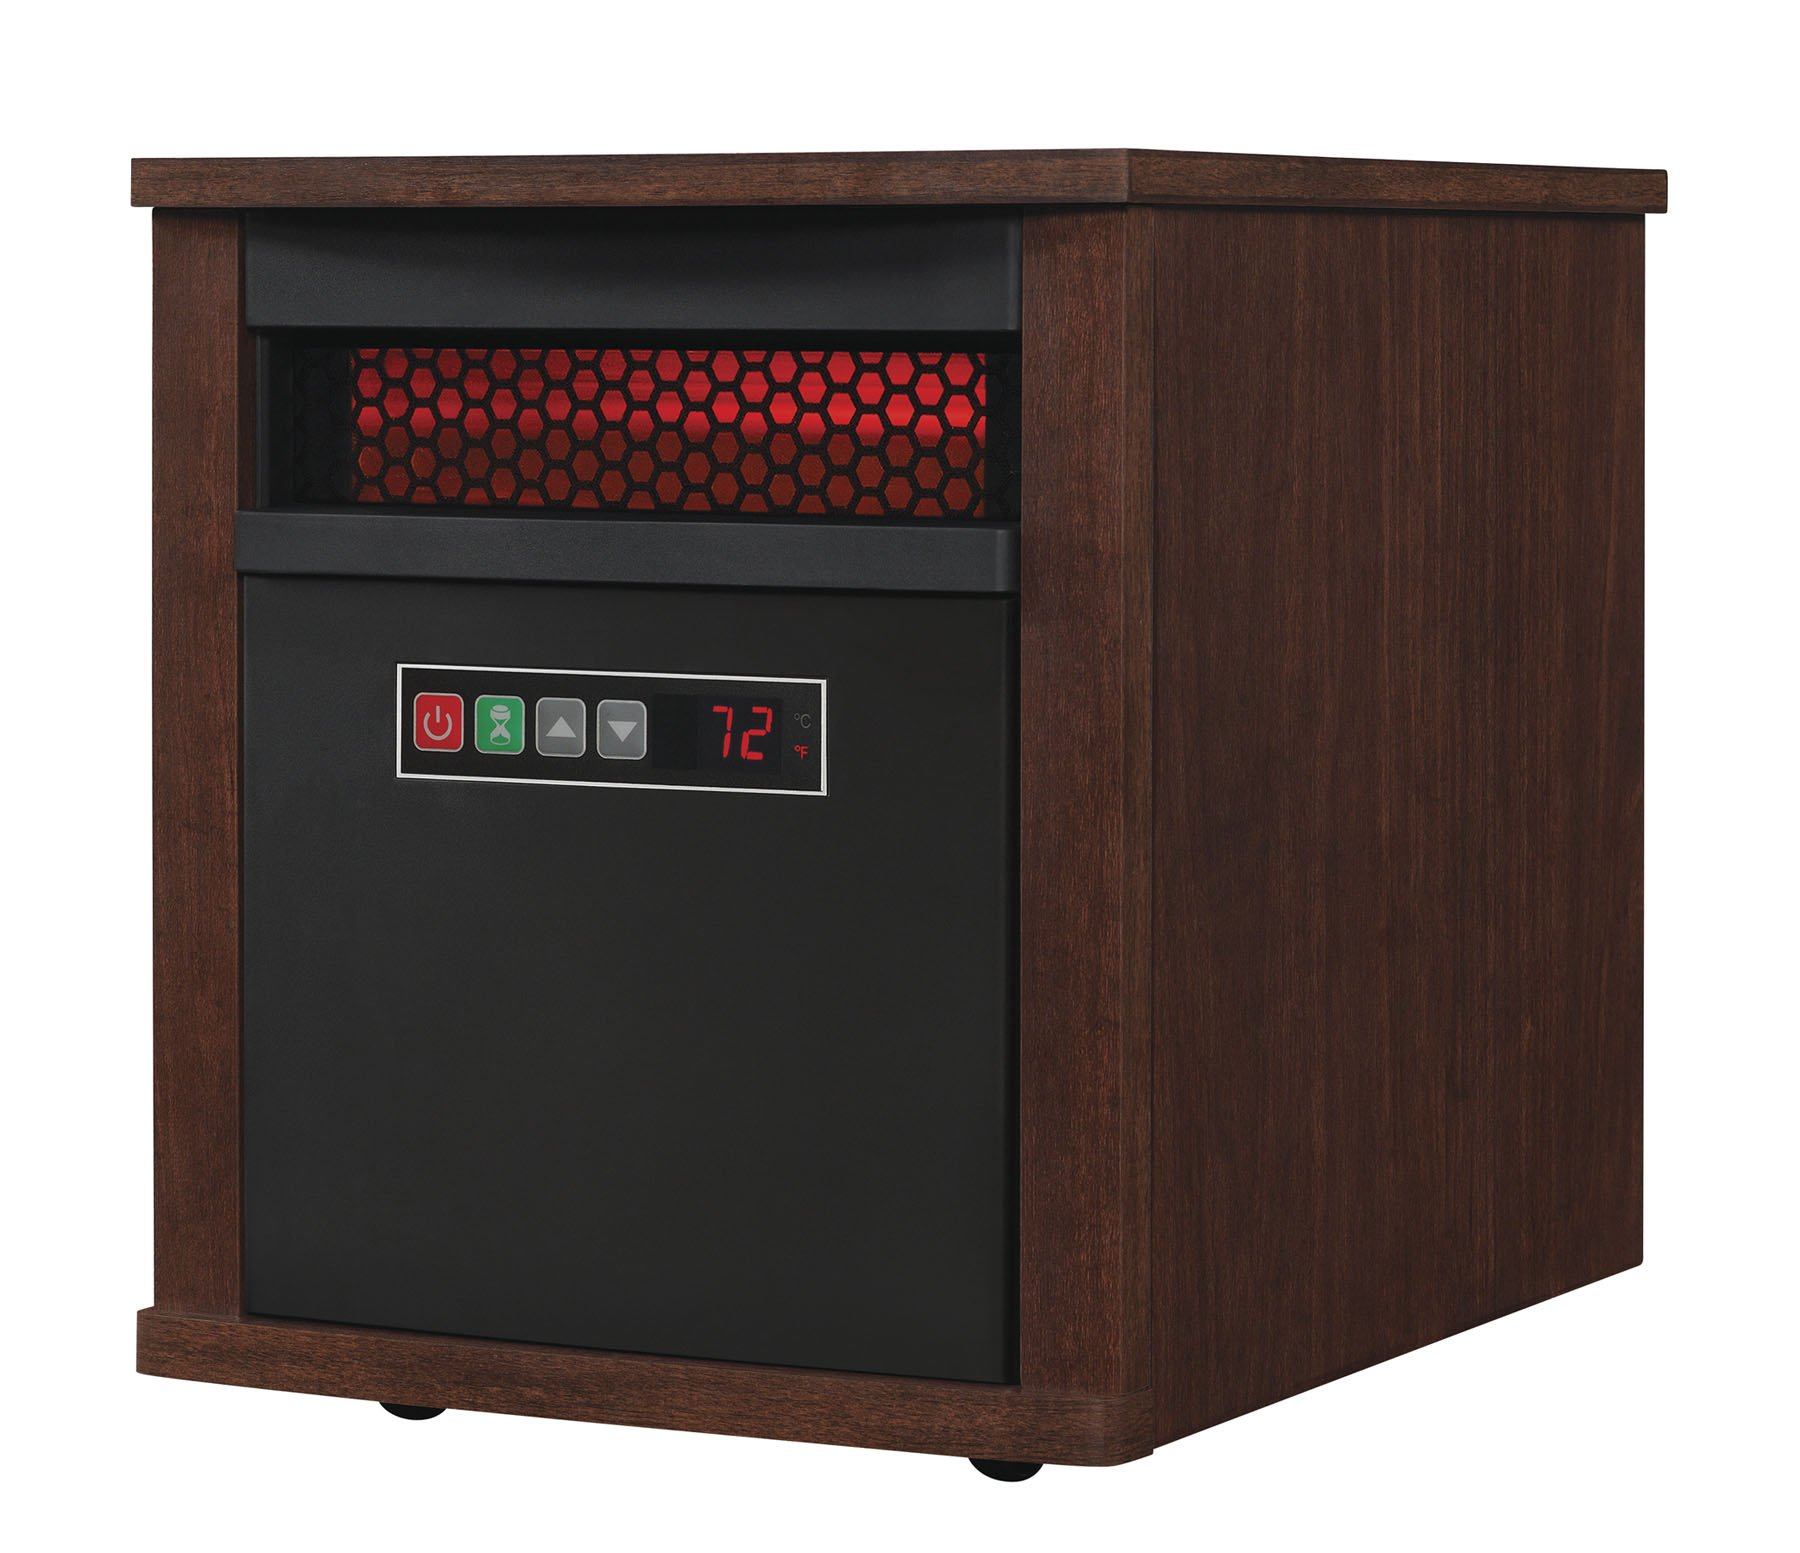 Duraflame 9HM7000-NC04 Portable Electric Infrared Quartz Heater, Cherry by Duraflame